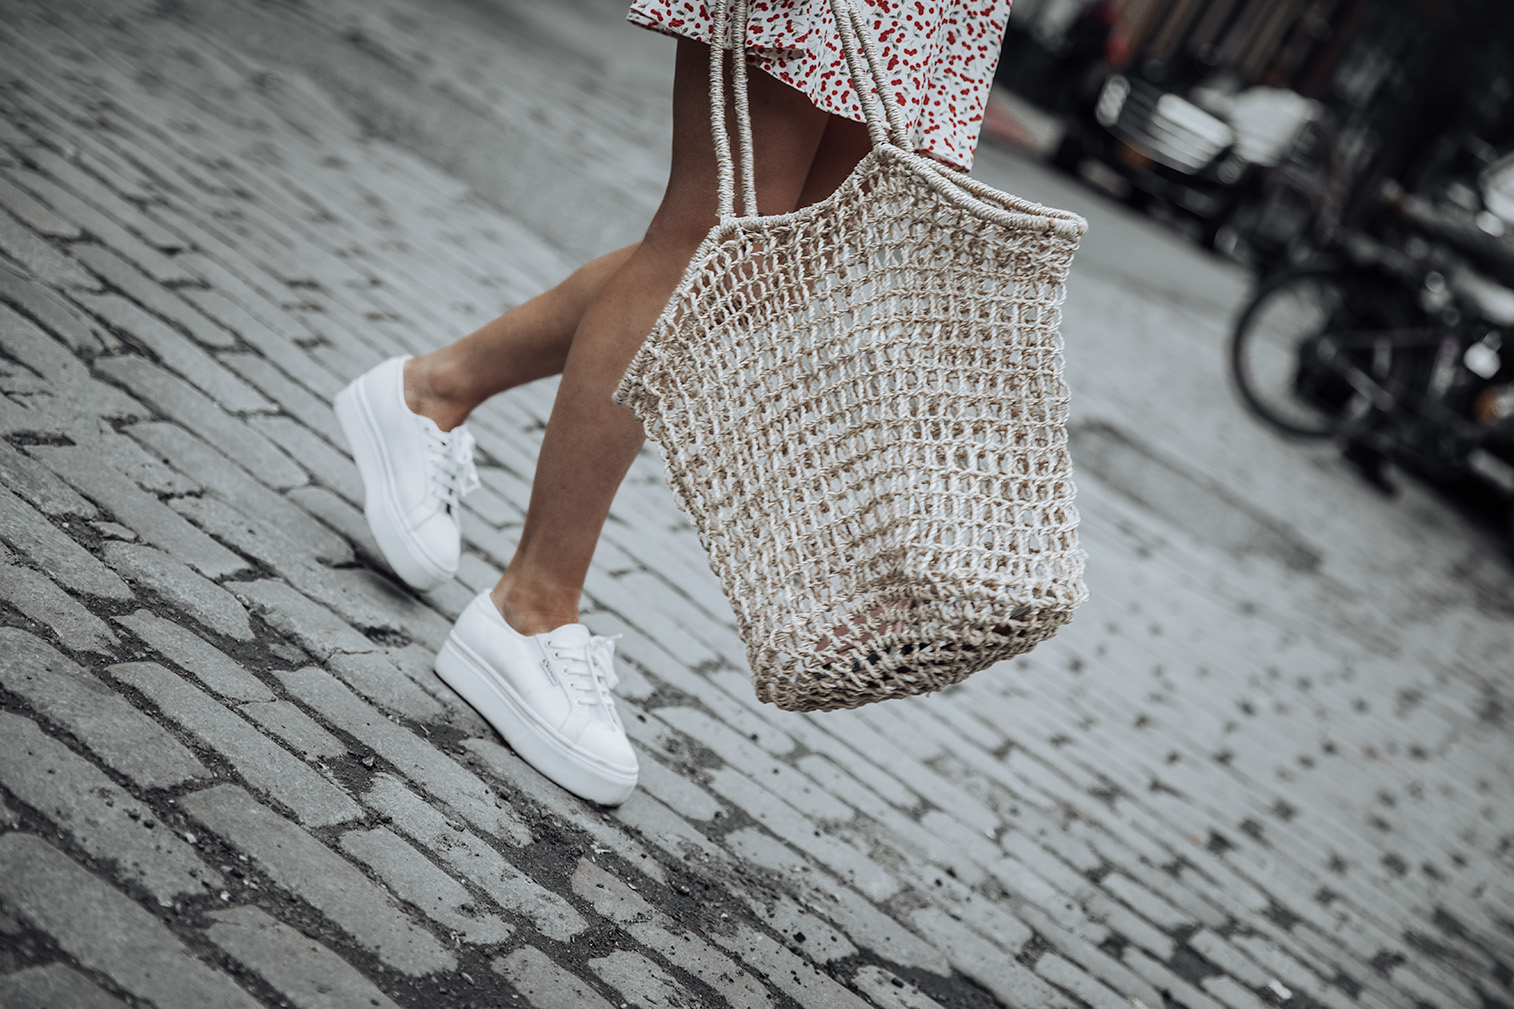 Flynn Skye Mini Dress | Superga Platform Sneakers | Knit Market Bag (Similar) | #liketkit